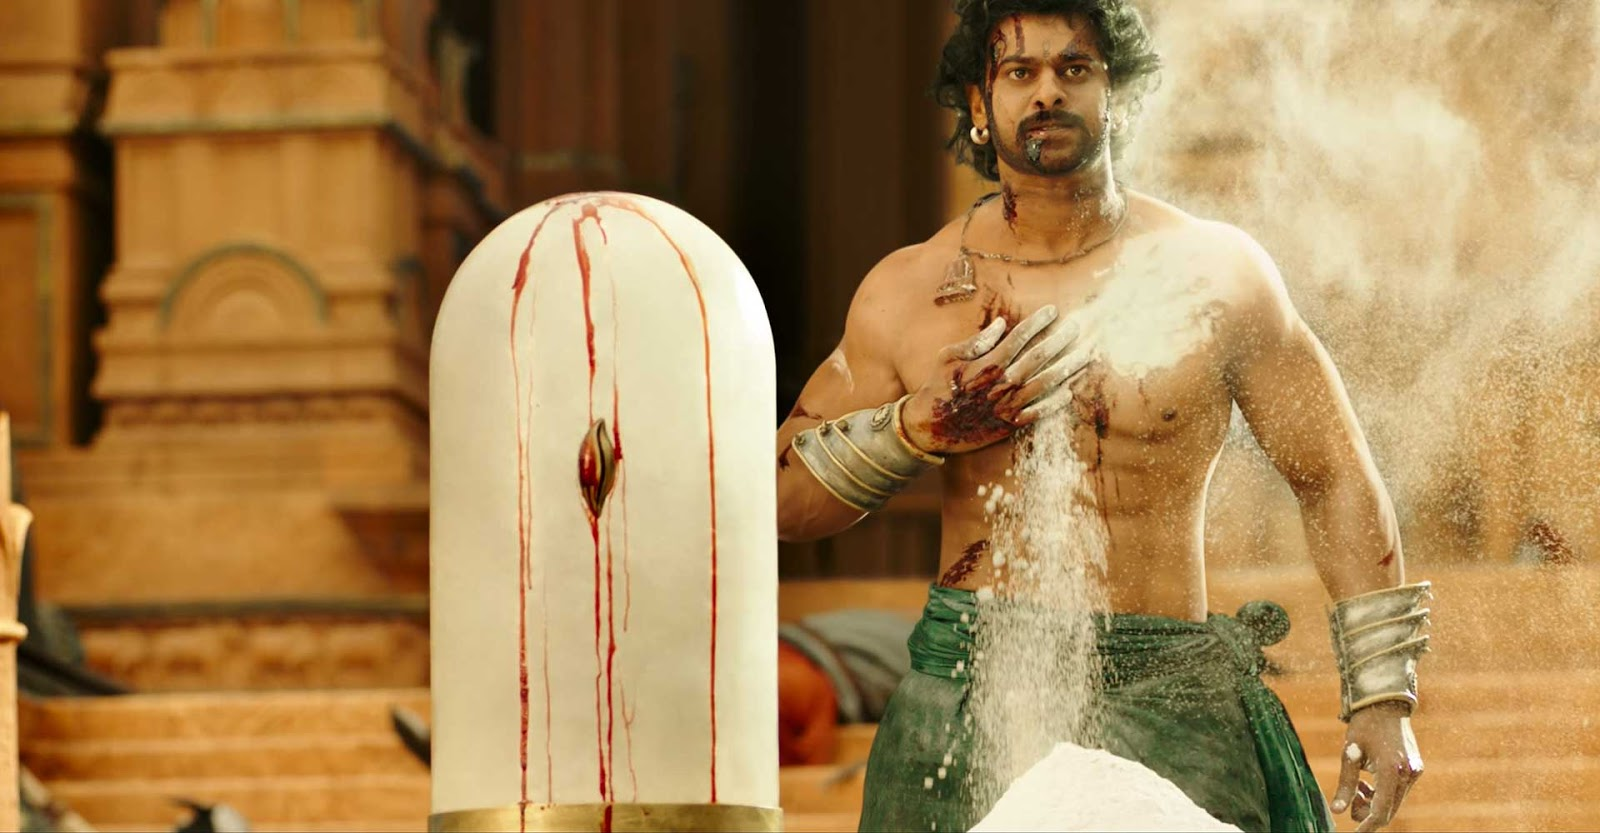 Bahubali 2 Full Movie Tamil Download | SientaLyric